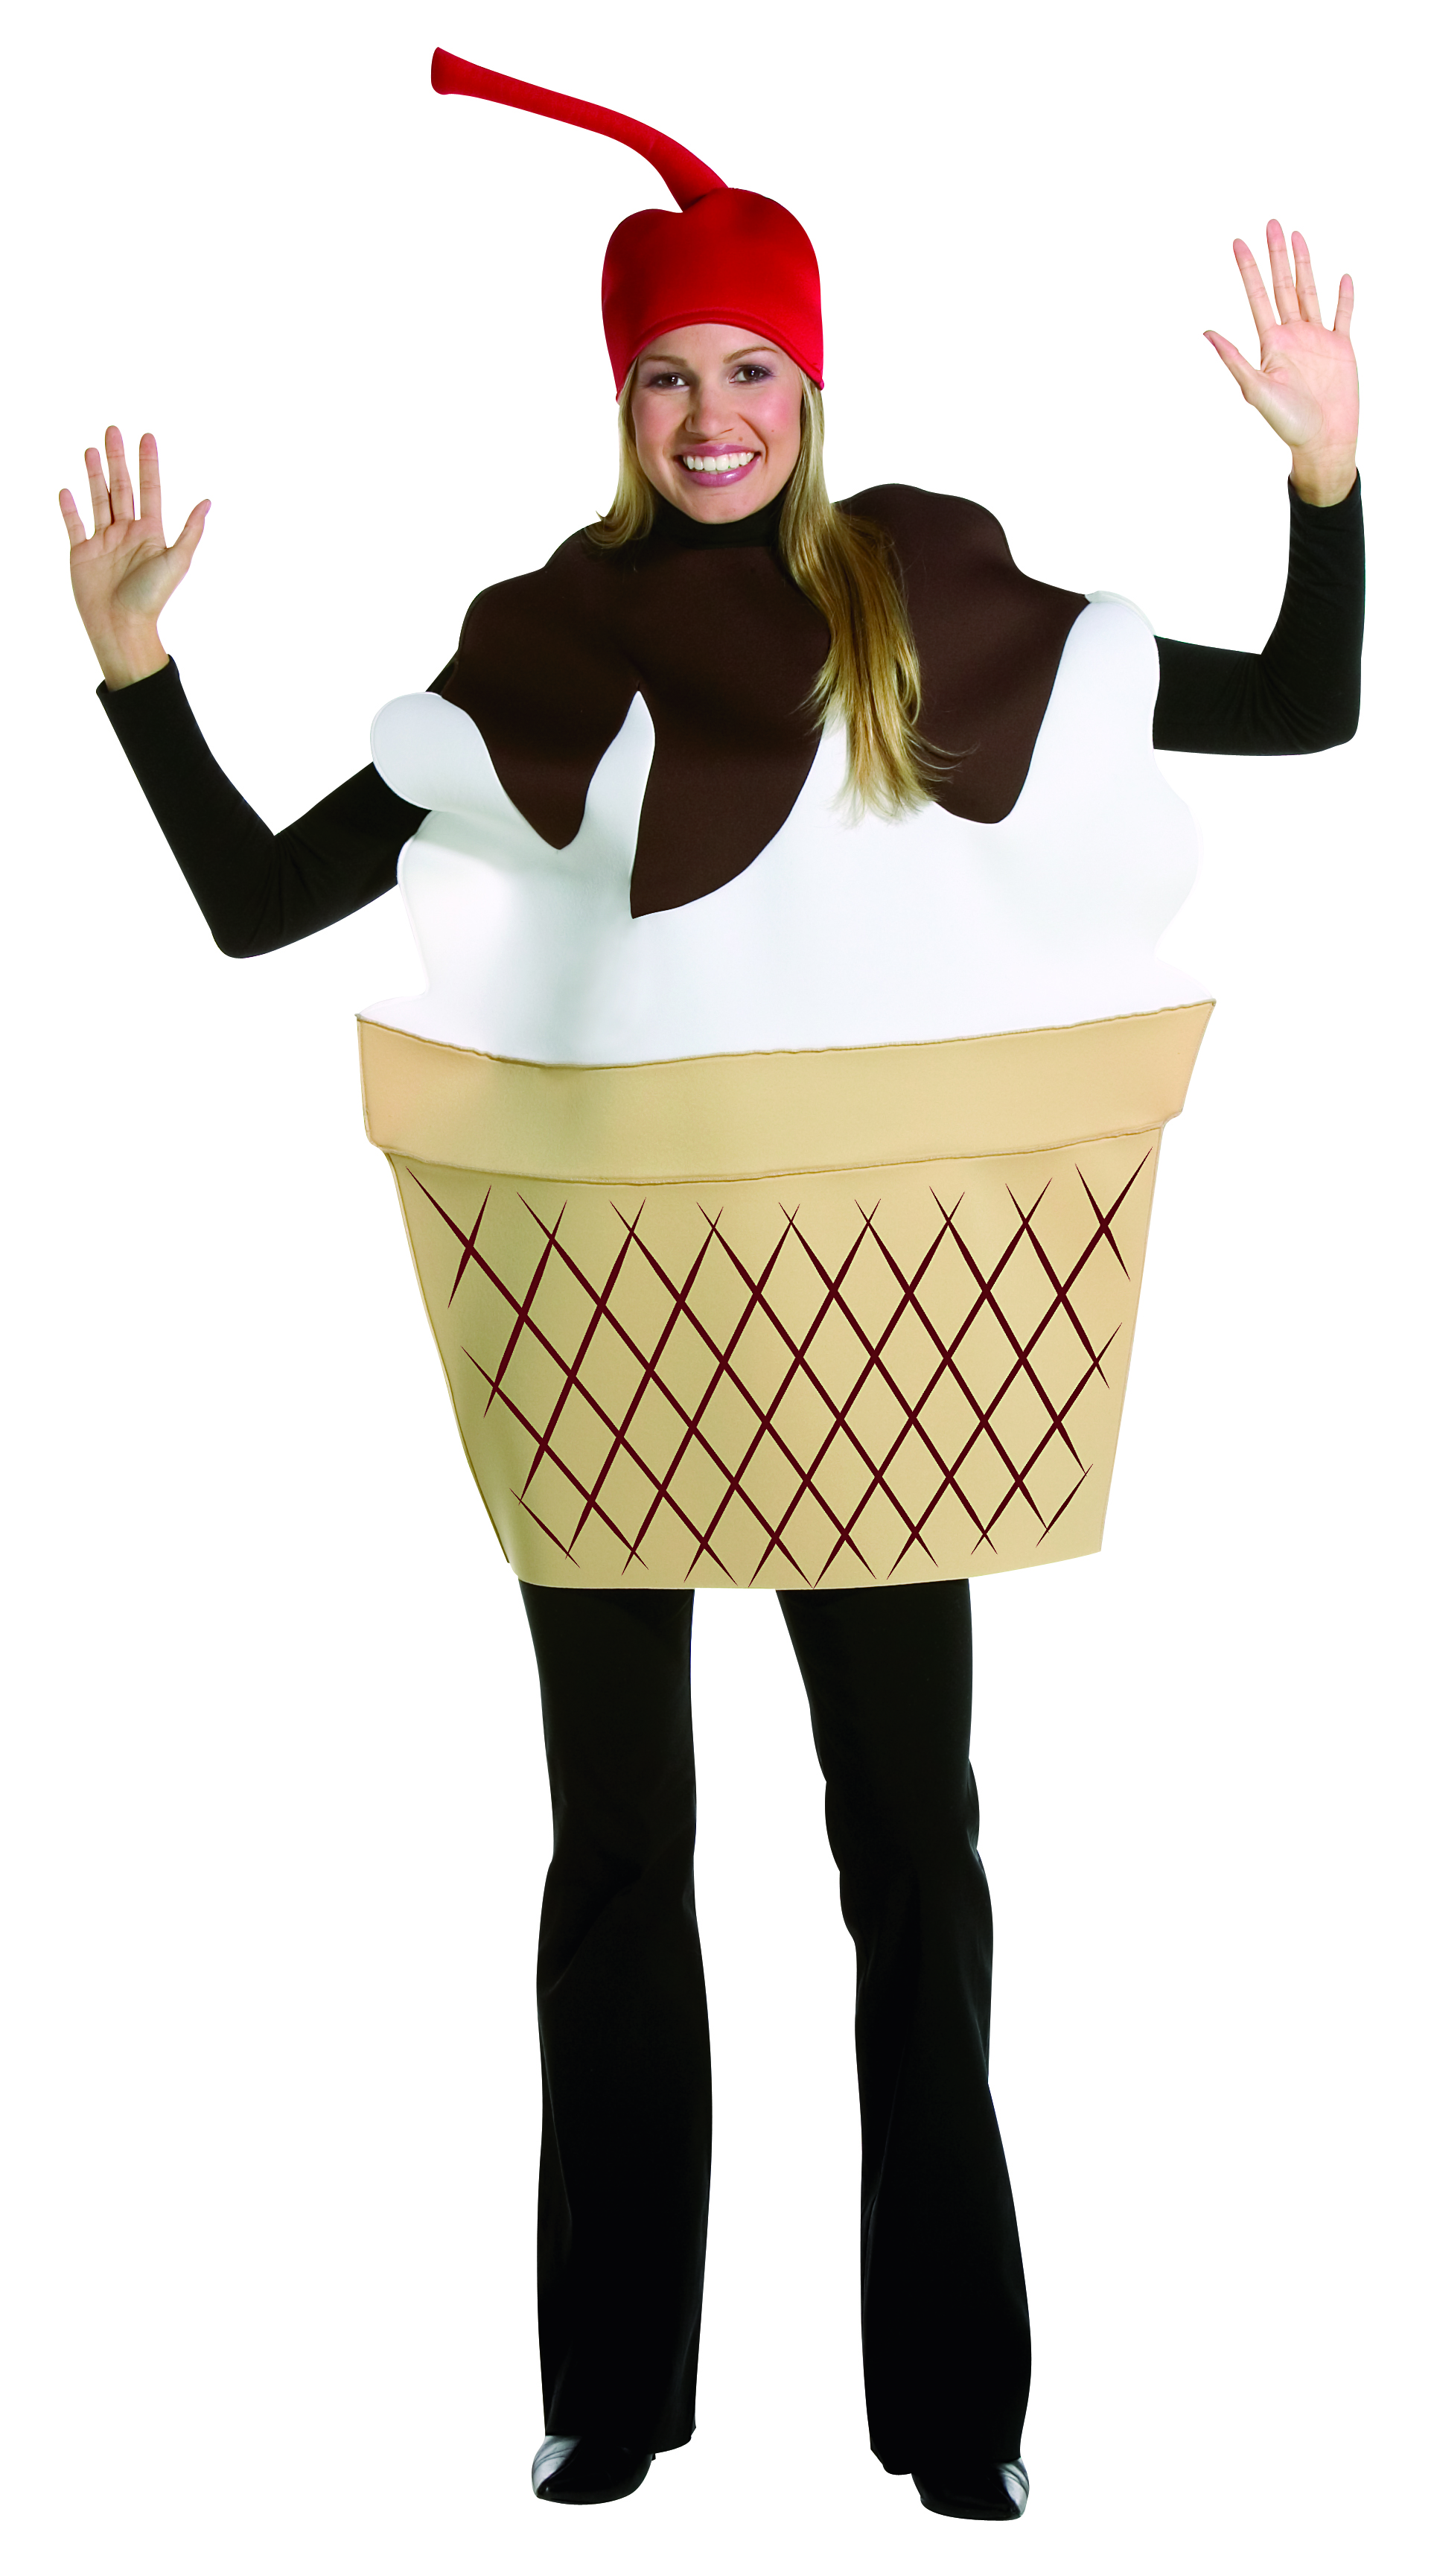 Food and Drink Costumes - Desserts - Ice Cream - American Costumes Las Vegas